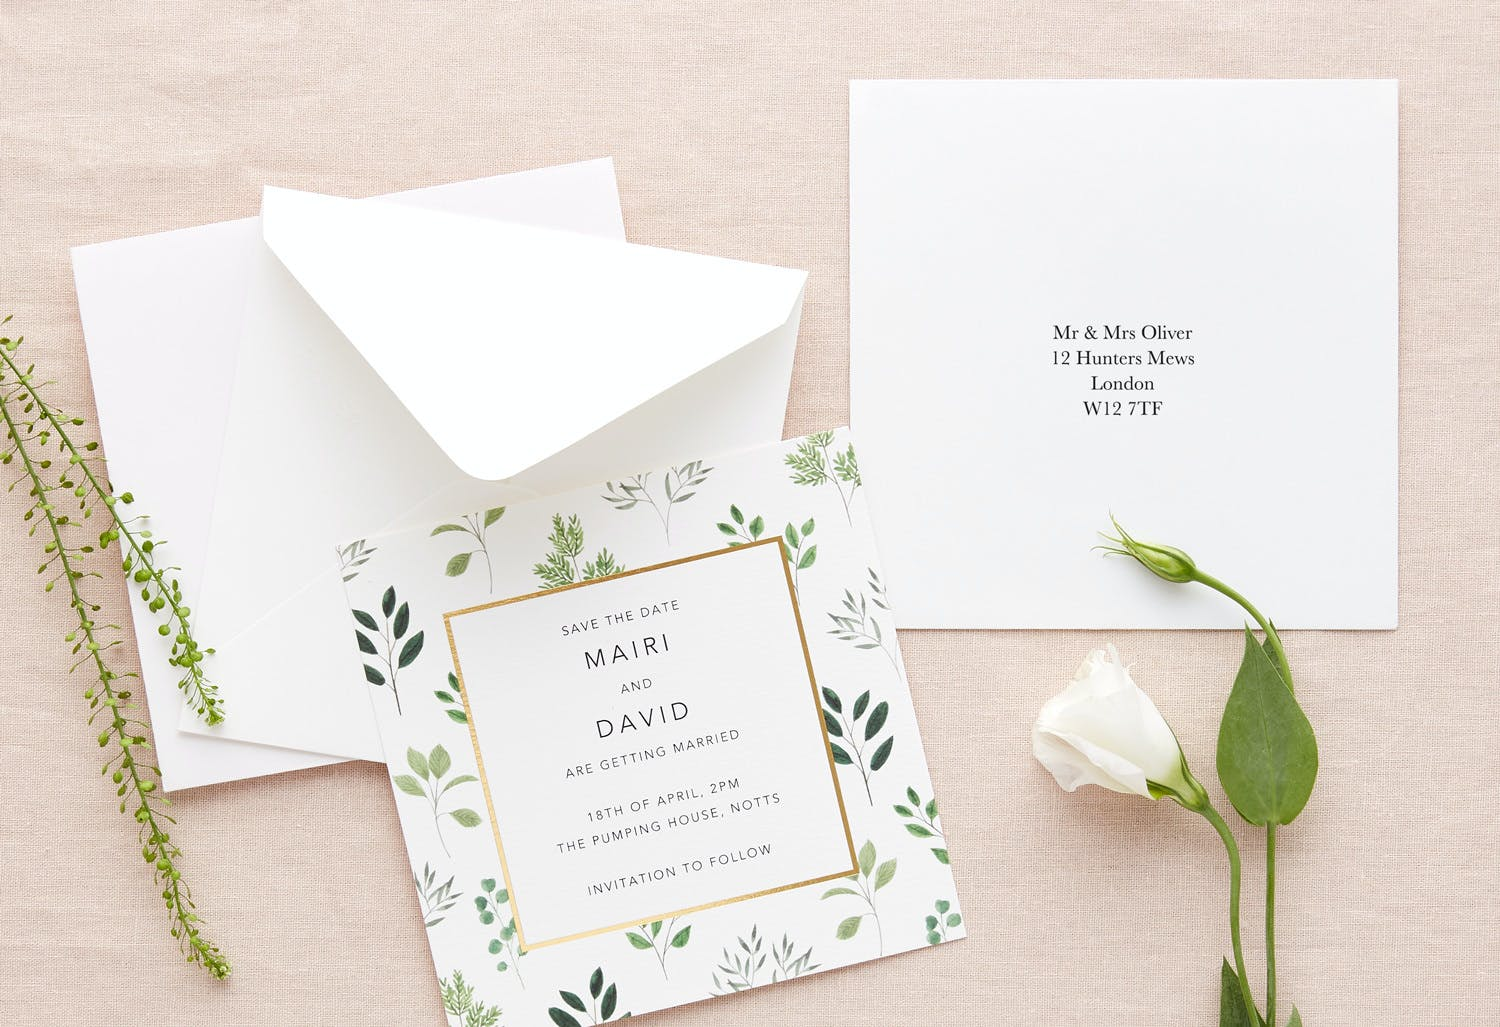 Papier recipient address envelope printing